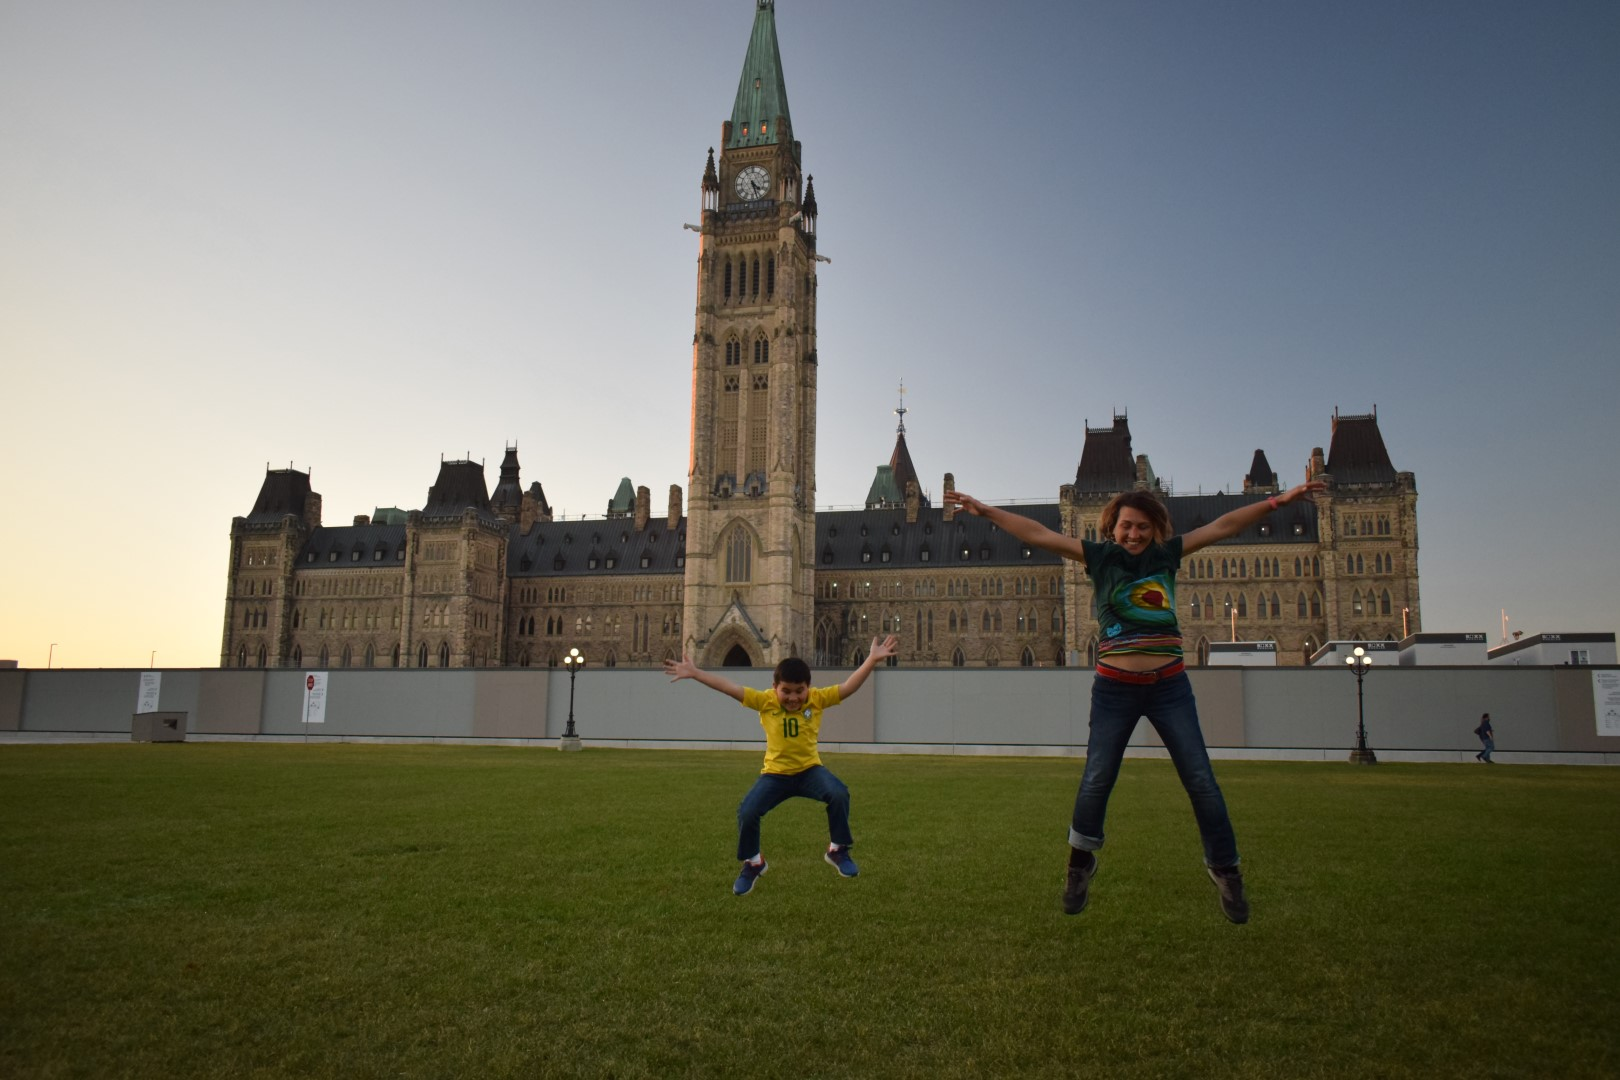 Parliament Hill, Ottawa, November 2020